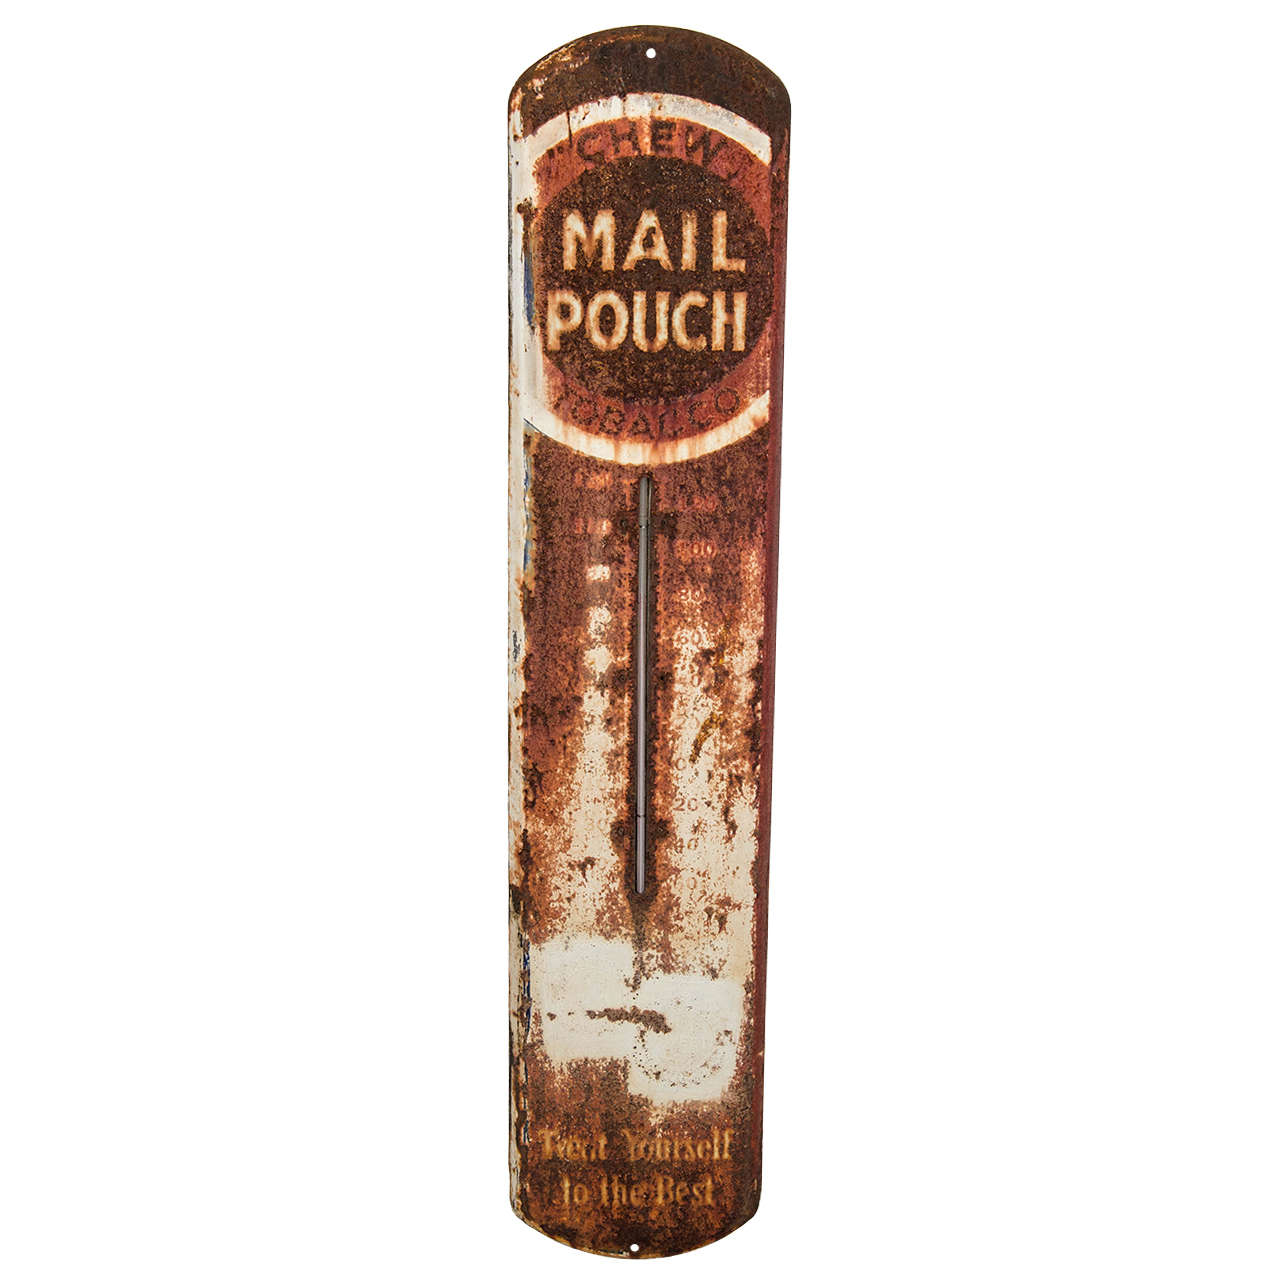 Weathered Mail Pouch Chewing Tobacco Sign at 1stdibs